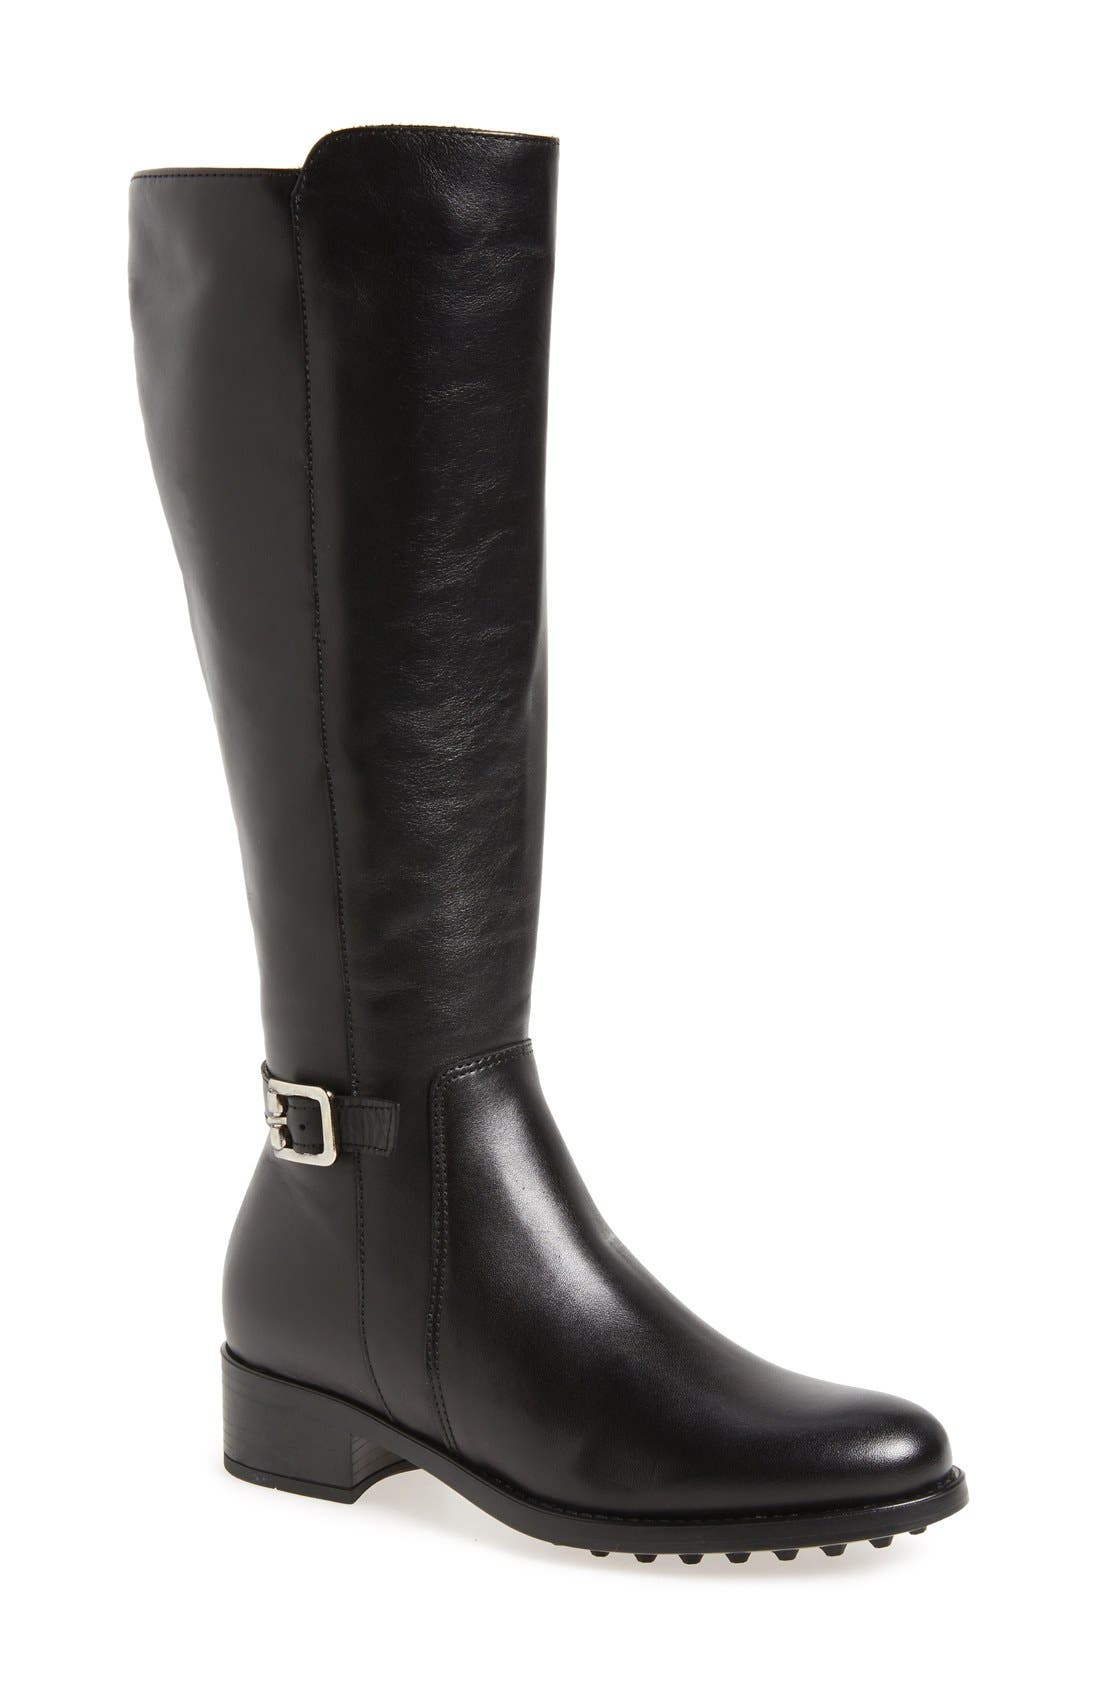 Alternate Image 1 Selected - La Canadienne Silvana Waterproof Riding Boot (Women)